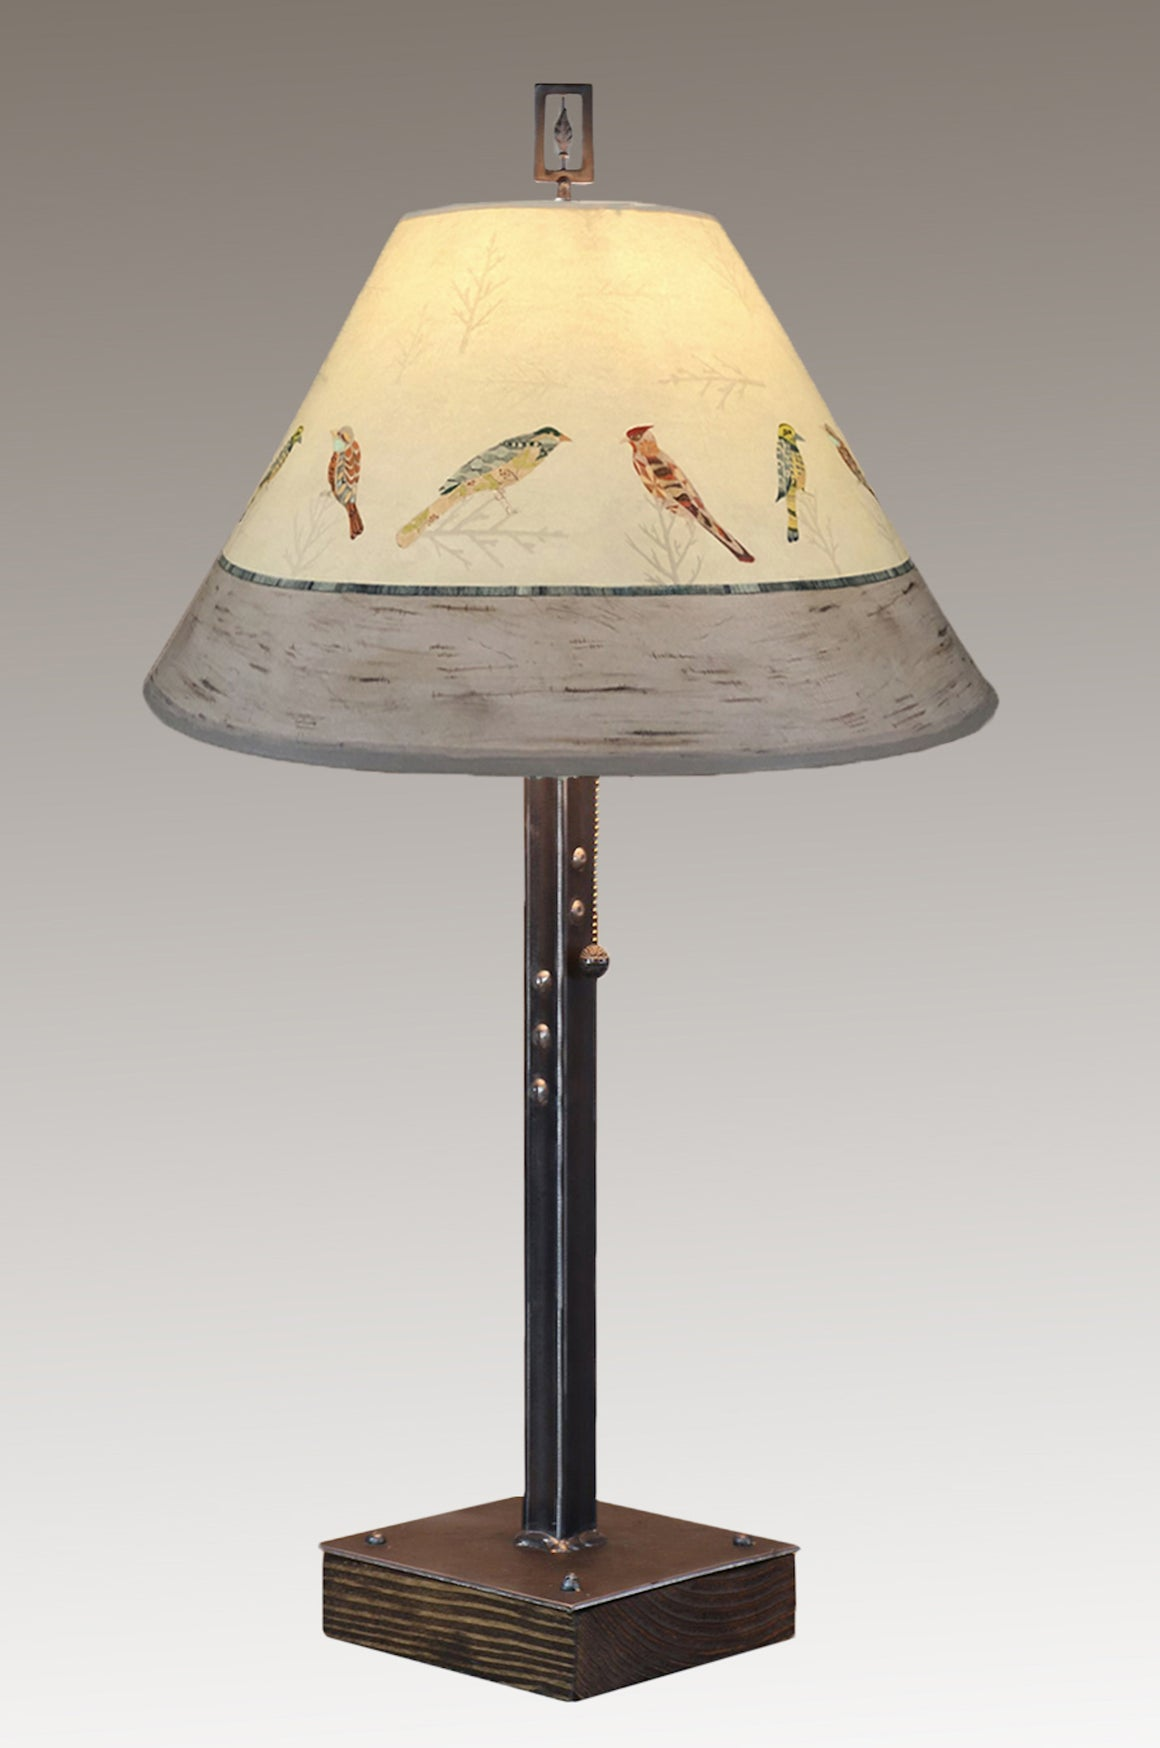 Steel Table Lamp on Wood with Medium Conical Shade in Bird Friends